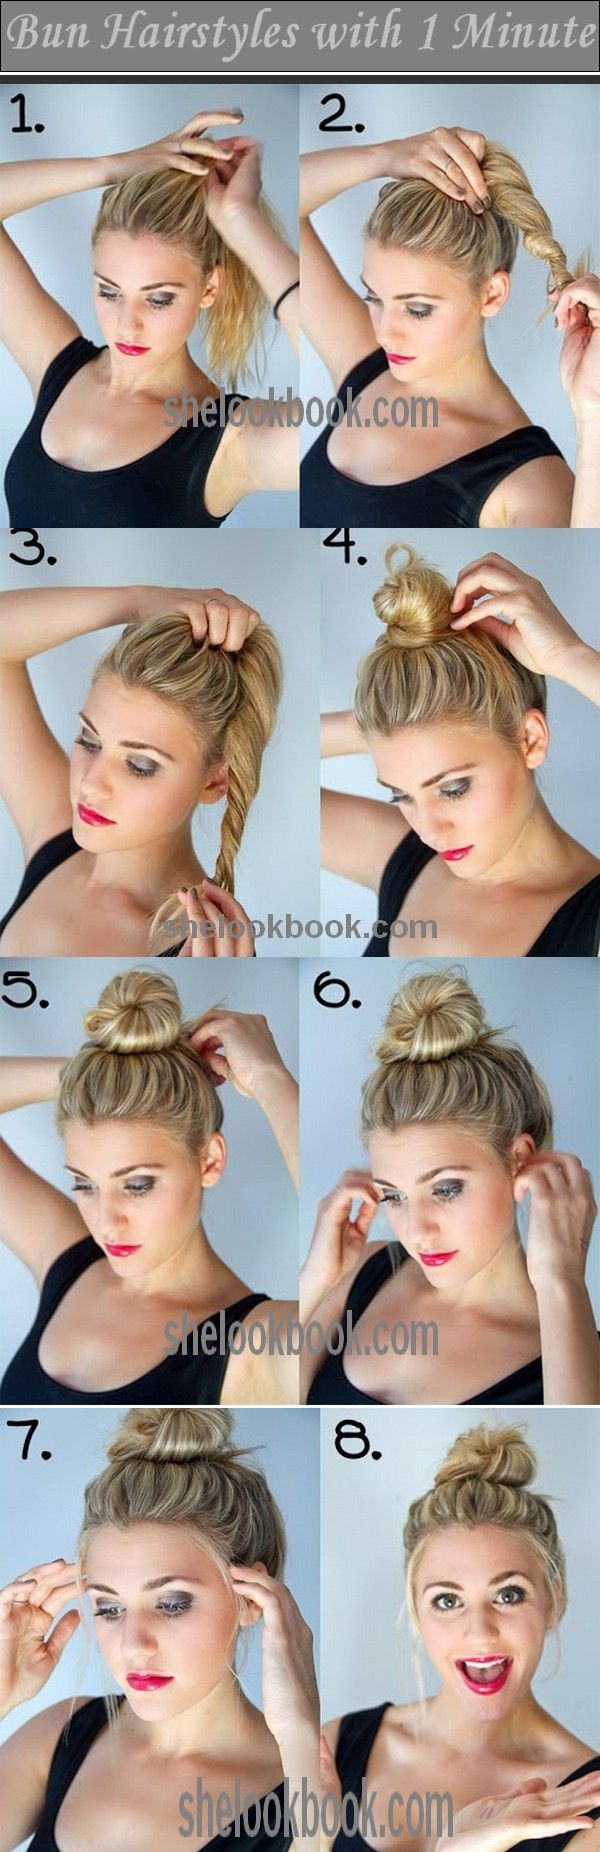 best hair styles images on pinterest braids beauty tips and